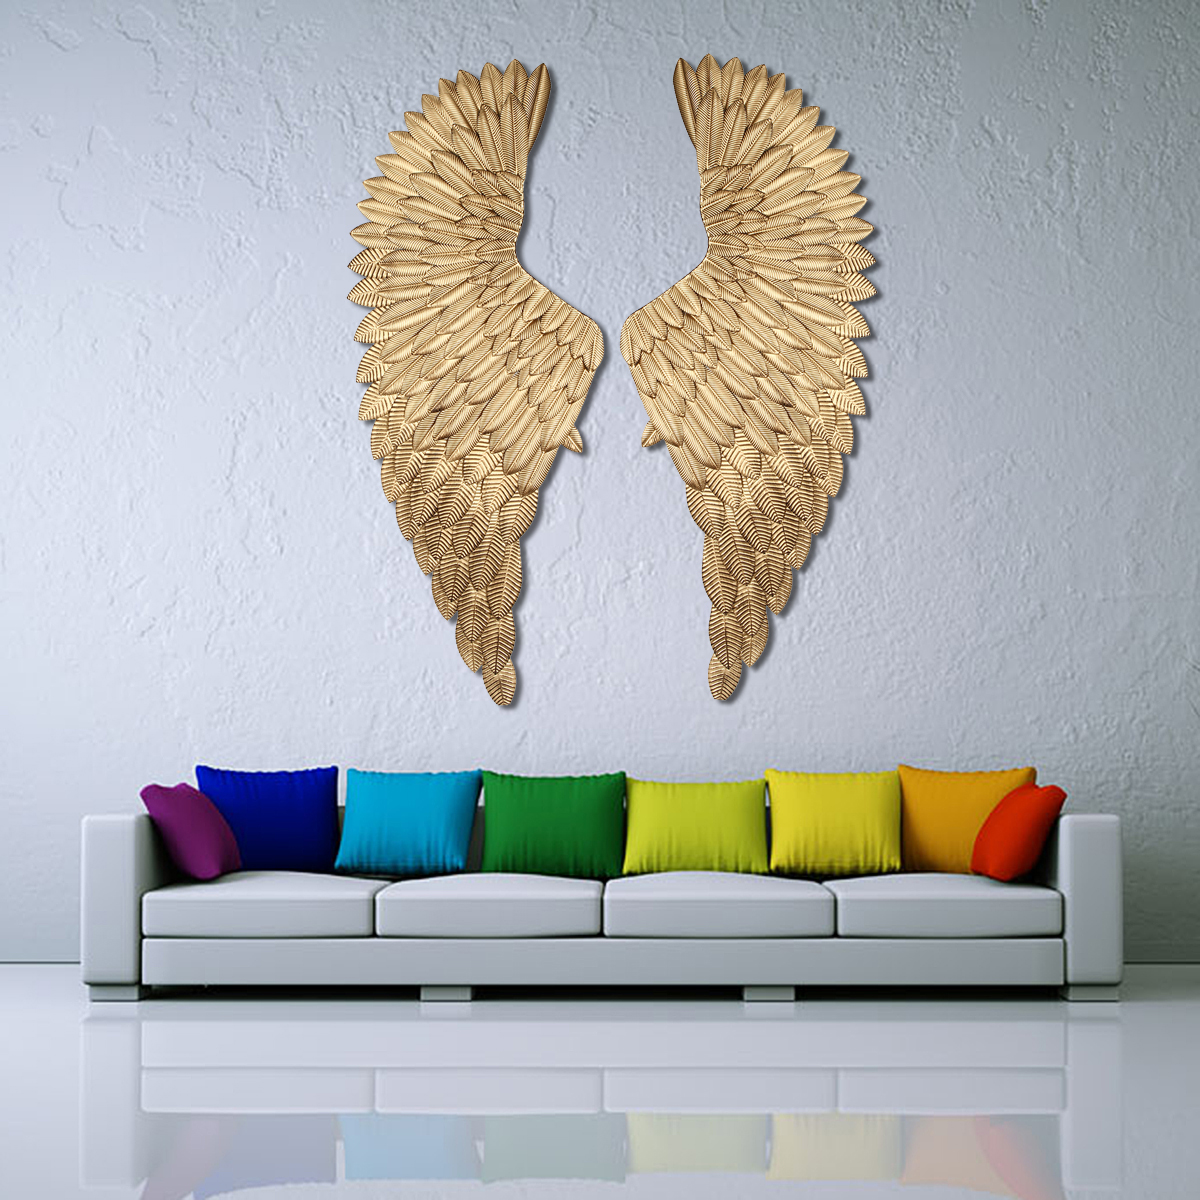 Wall Decoration Angel Wings Retro Metal wings Bar Coffee Shop Wall Decoration Home Bedroom Living room decor Christmas Industry